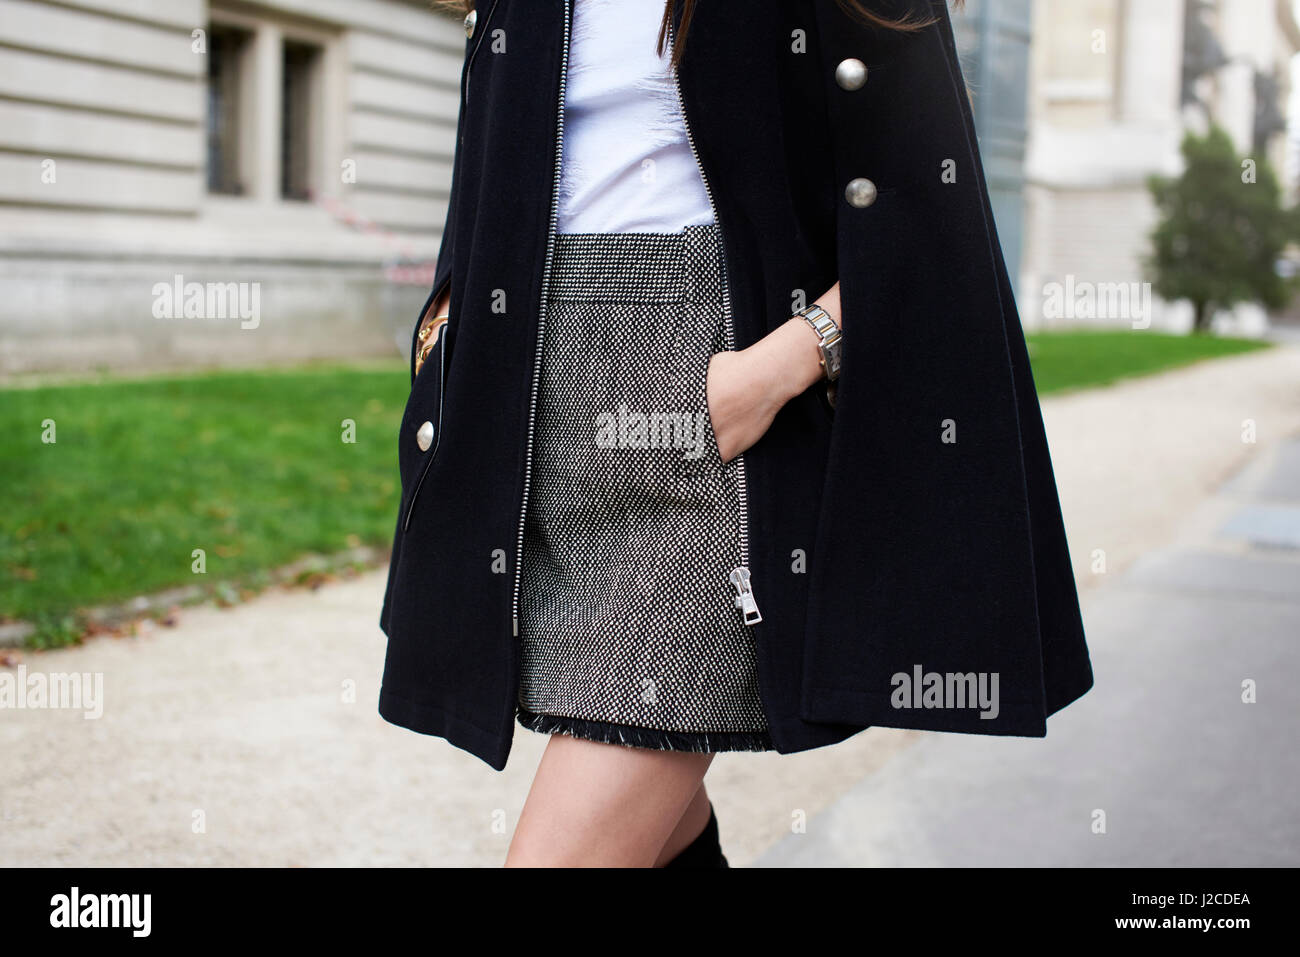 Woman wearing tweed miniskirt and black cape, side view crop - Stock Image